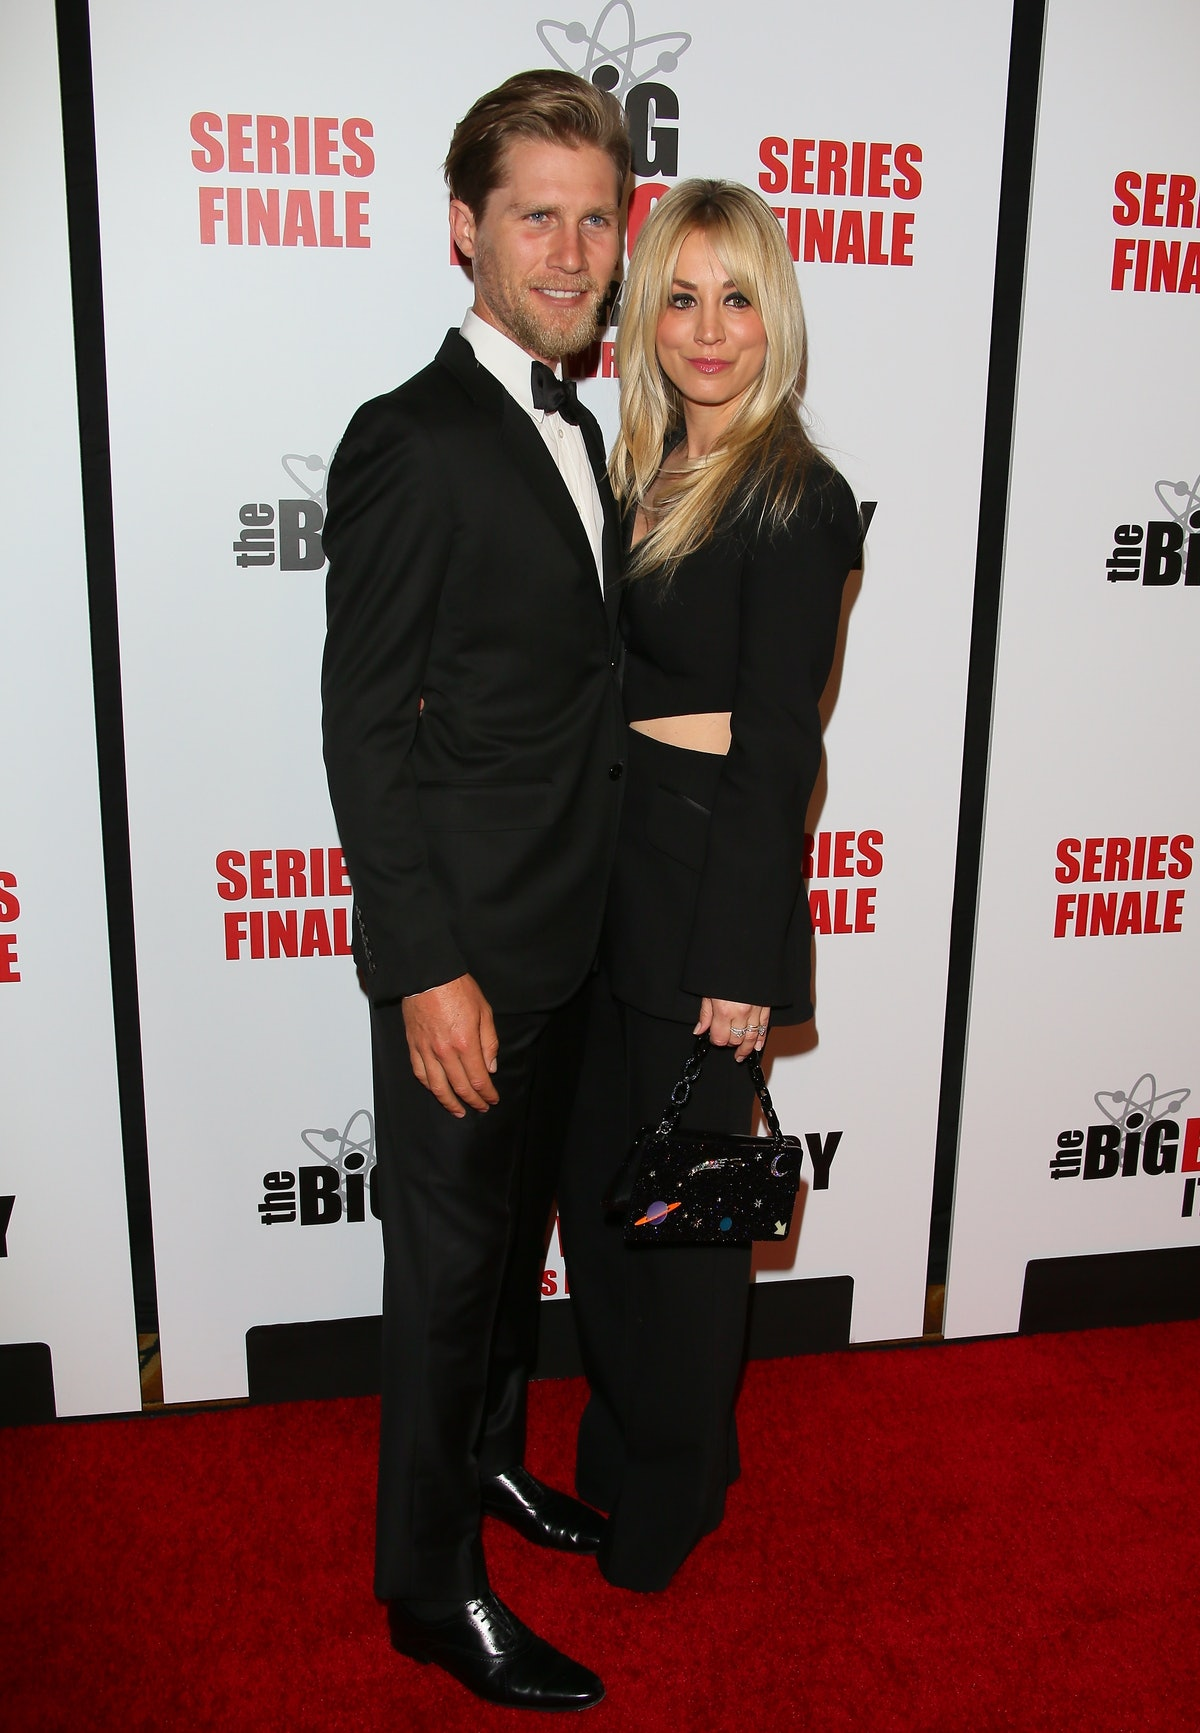 """PASADENA, CALIFORNIA - MAY 01: Kaley Cuoco and Karl Cook attend series finale party for CBS' """"The Bi..."""